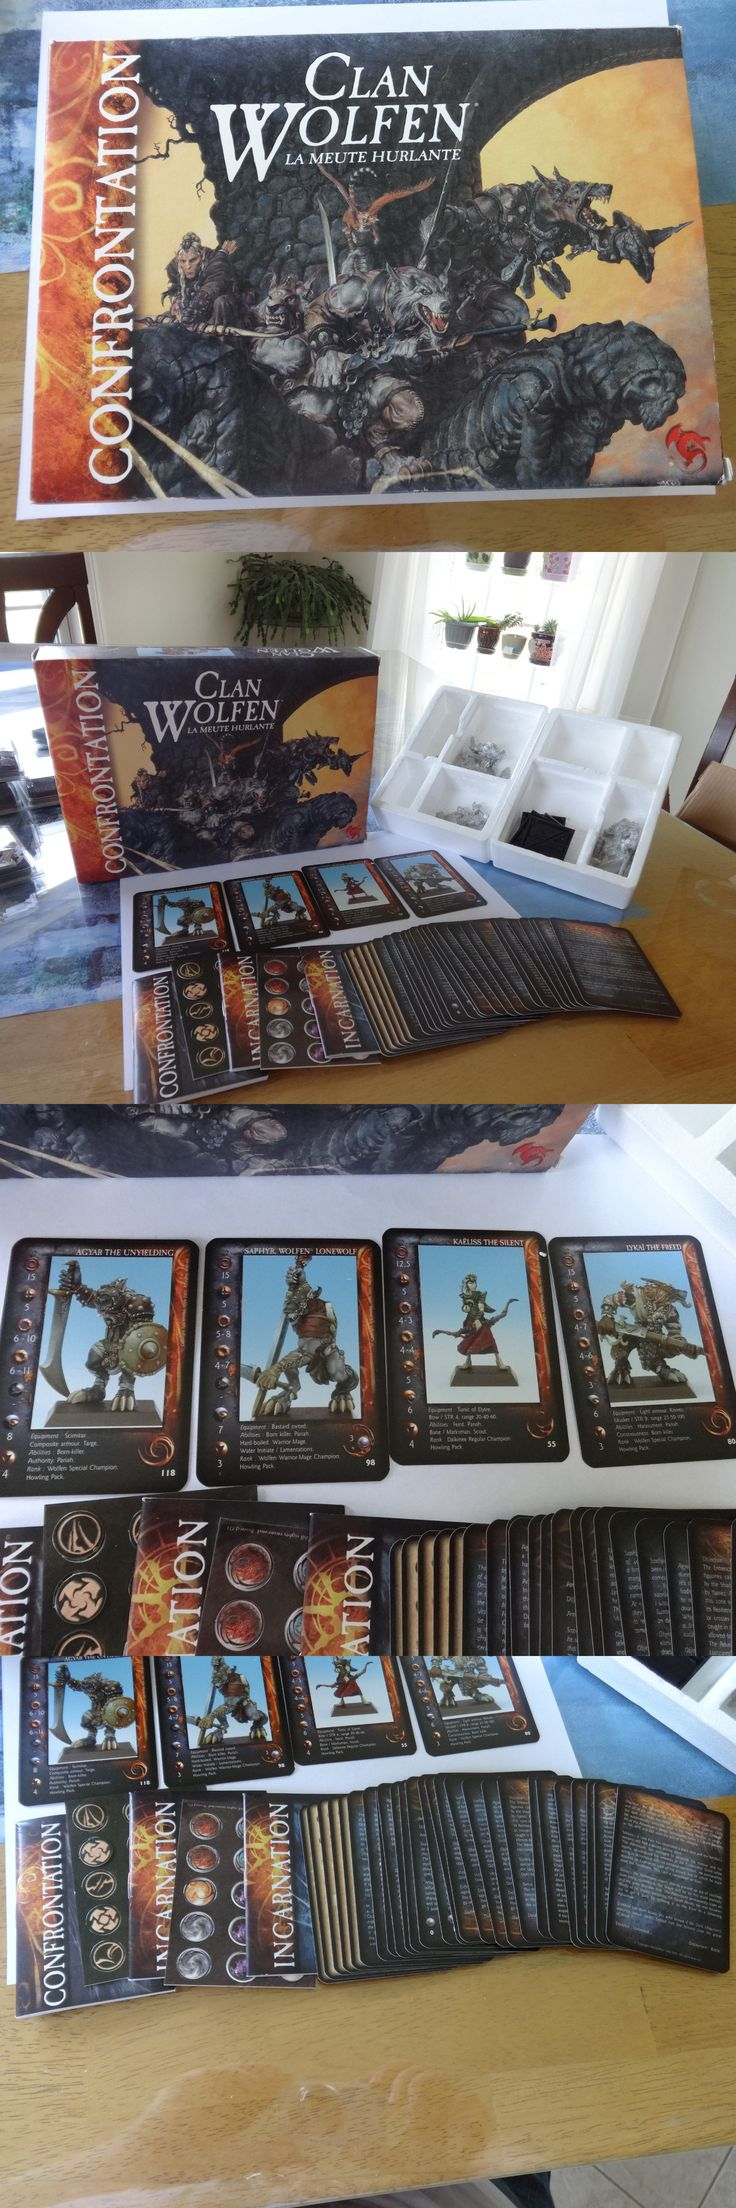 Confrontation 45361: Clan Wolfen The Howling Pack Boxed Set Confrontation Rackham English Oop Nib -> BUY IT NOW ONLY: $98.99 on eBay!